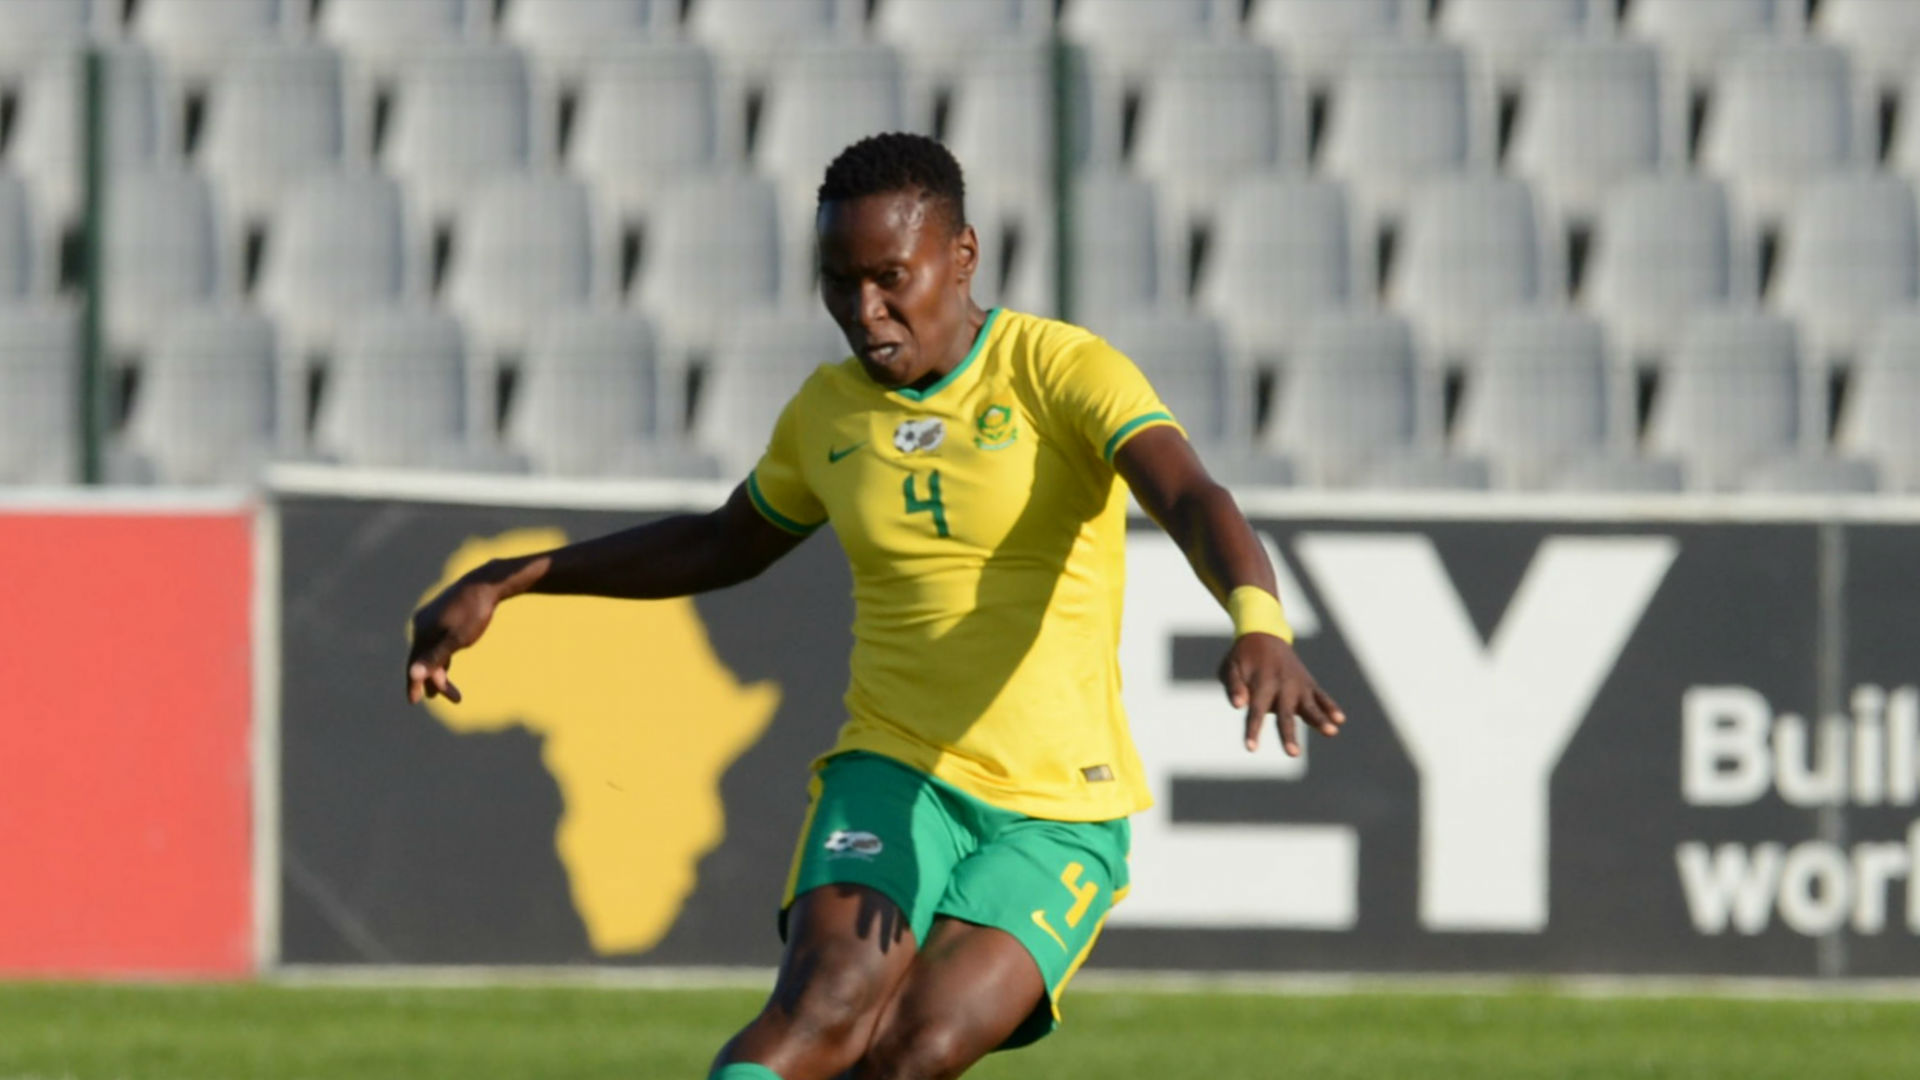 'This is the reward' - Banyana star Matlou excited to join Eibar